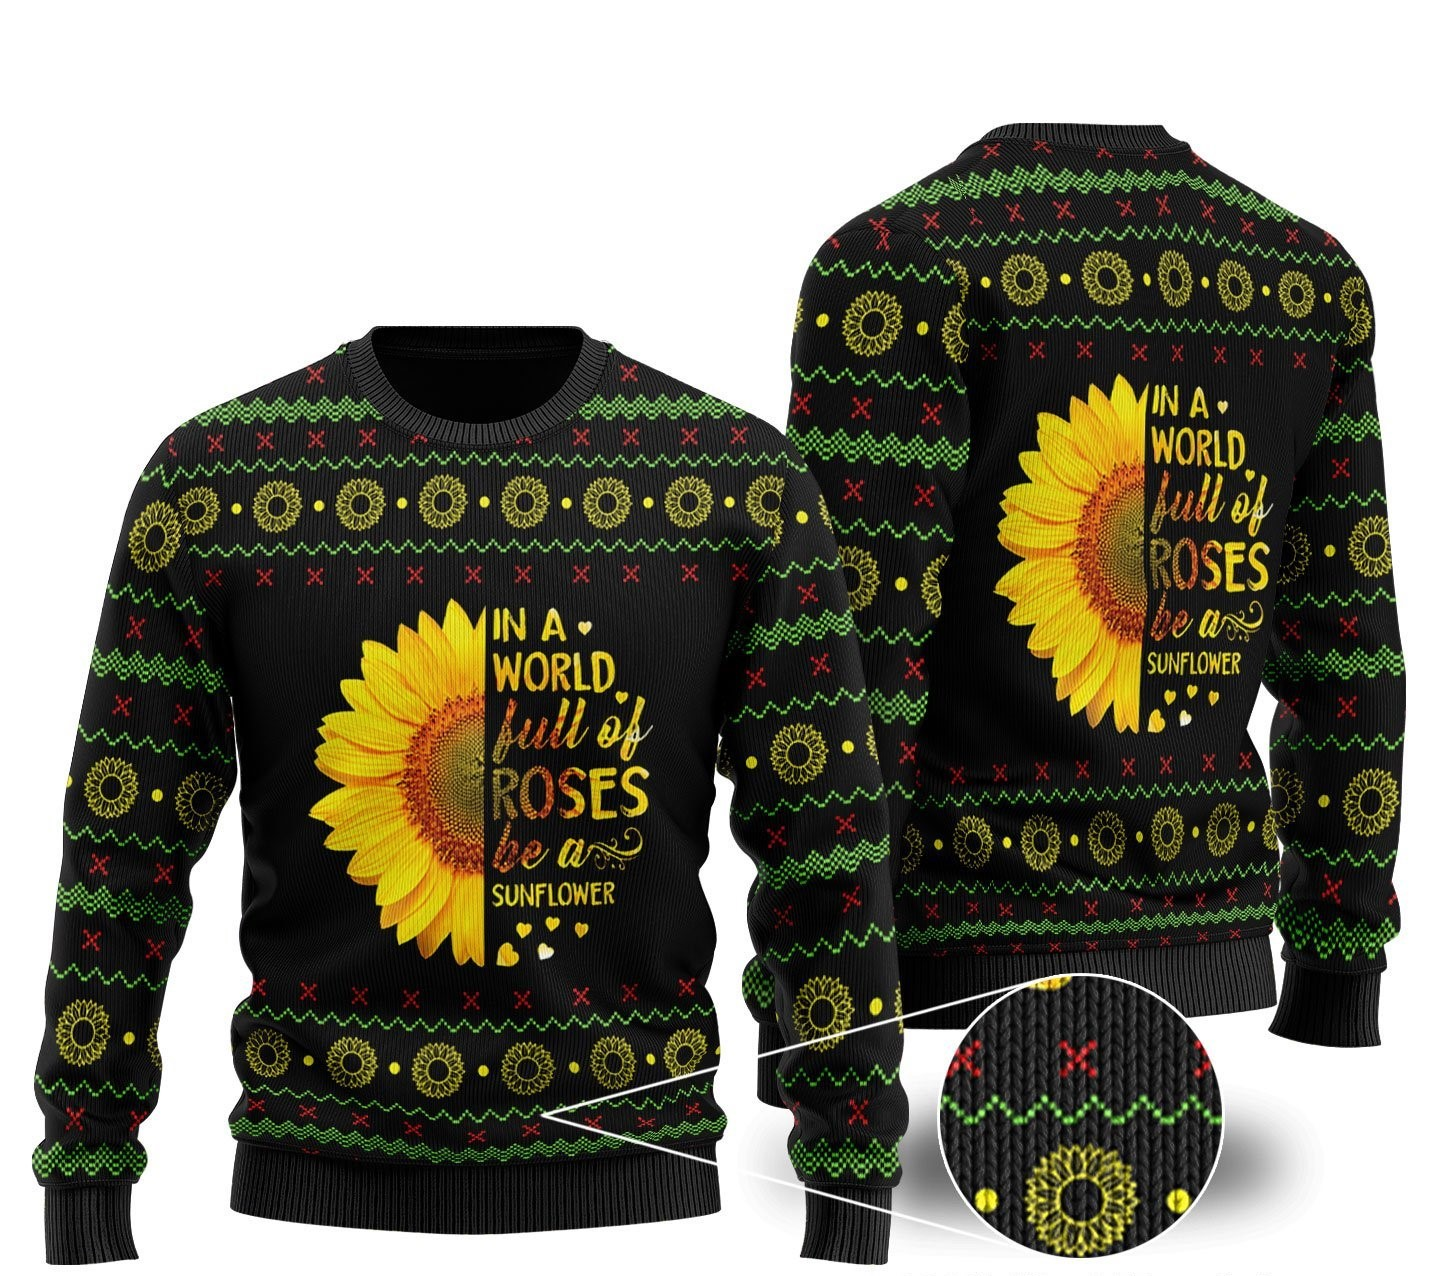 [Top-selling] in a world full of roses be a sunflower ugly christmas sweater - maria